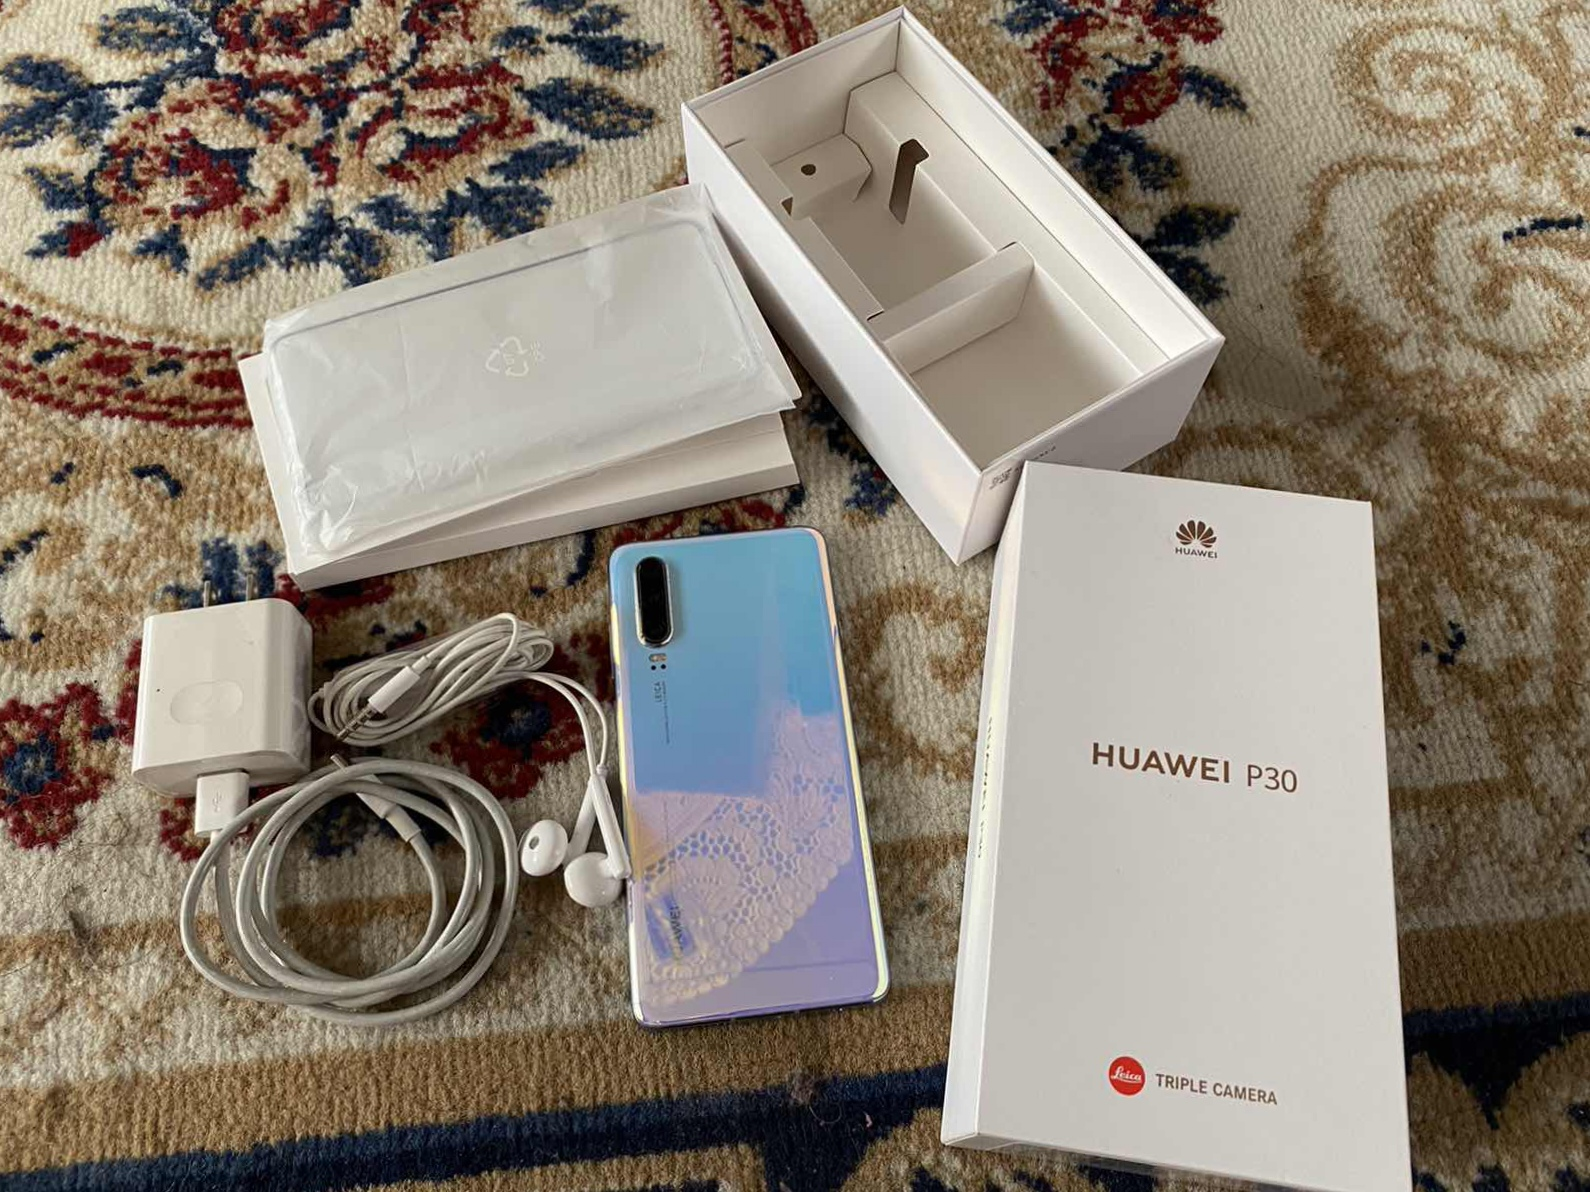 Selling Huawei P30 photo